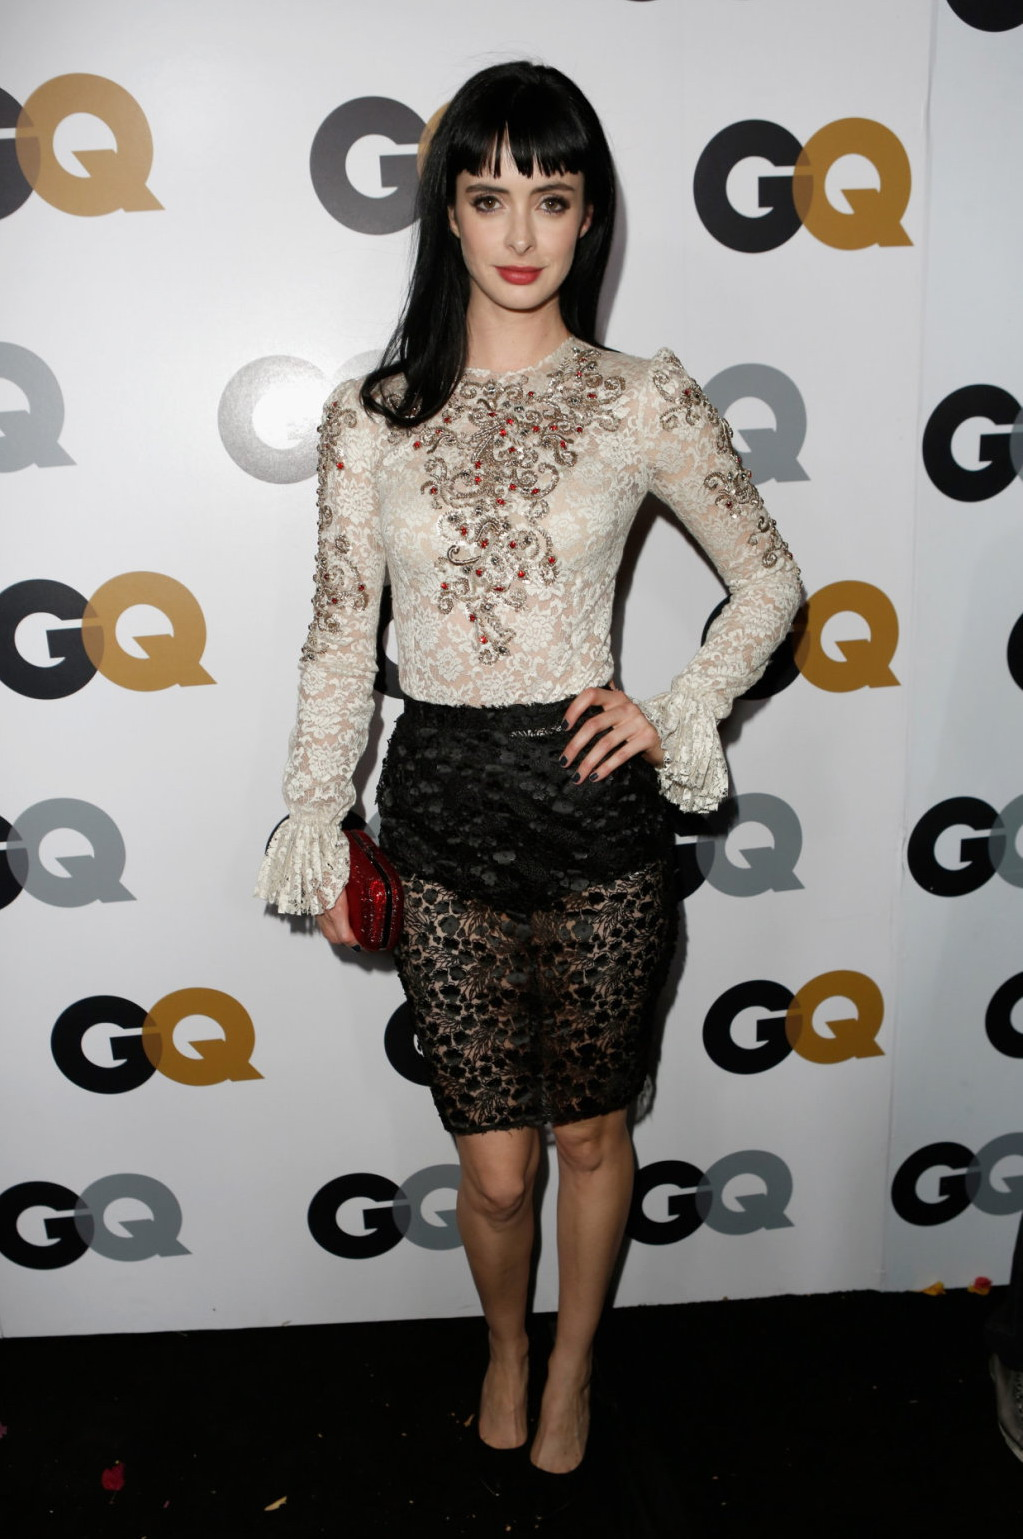 Krysten Ritter Cover: Krysten Ritter Hot Images GQ Men Of The Year Party In Los